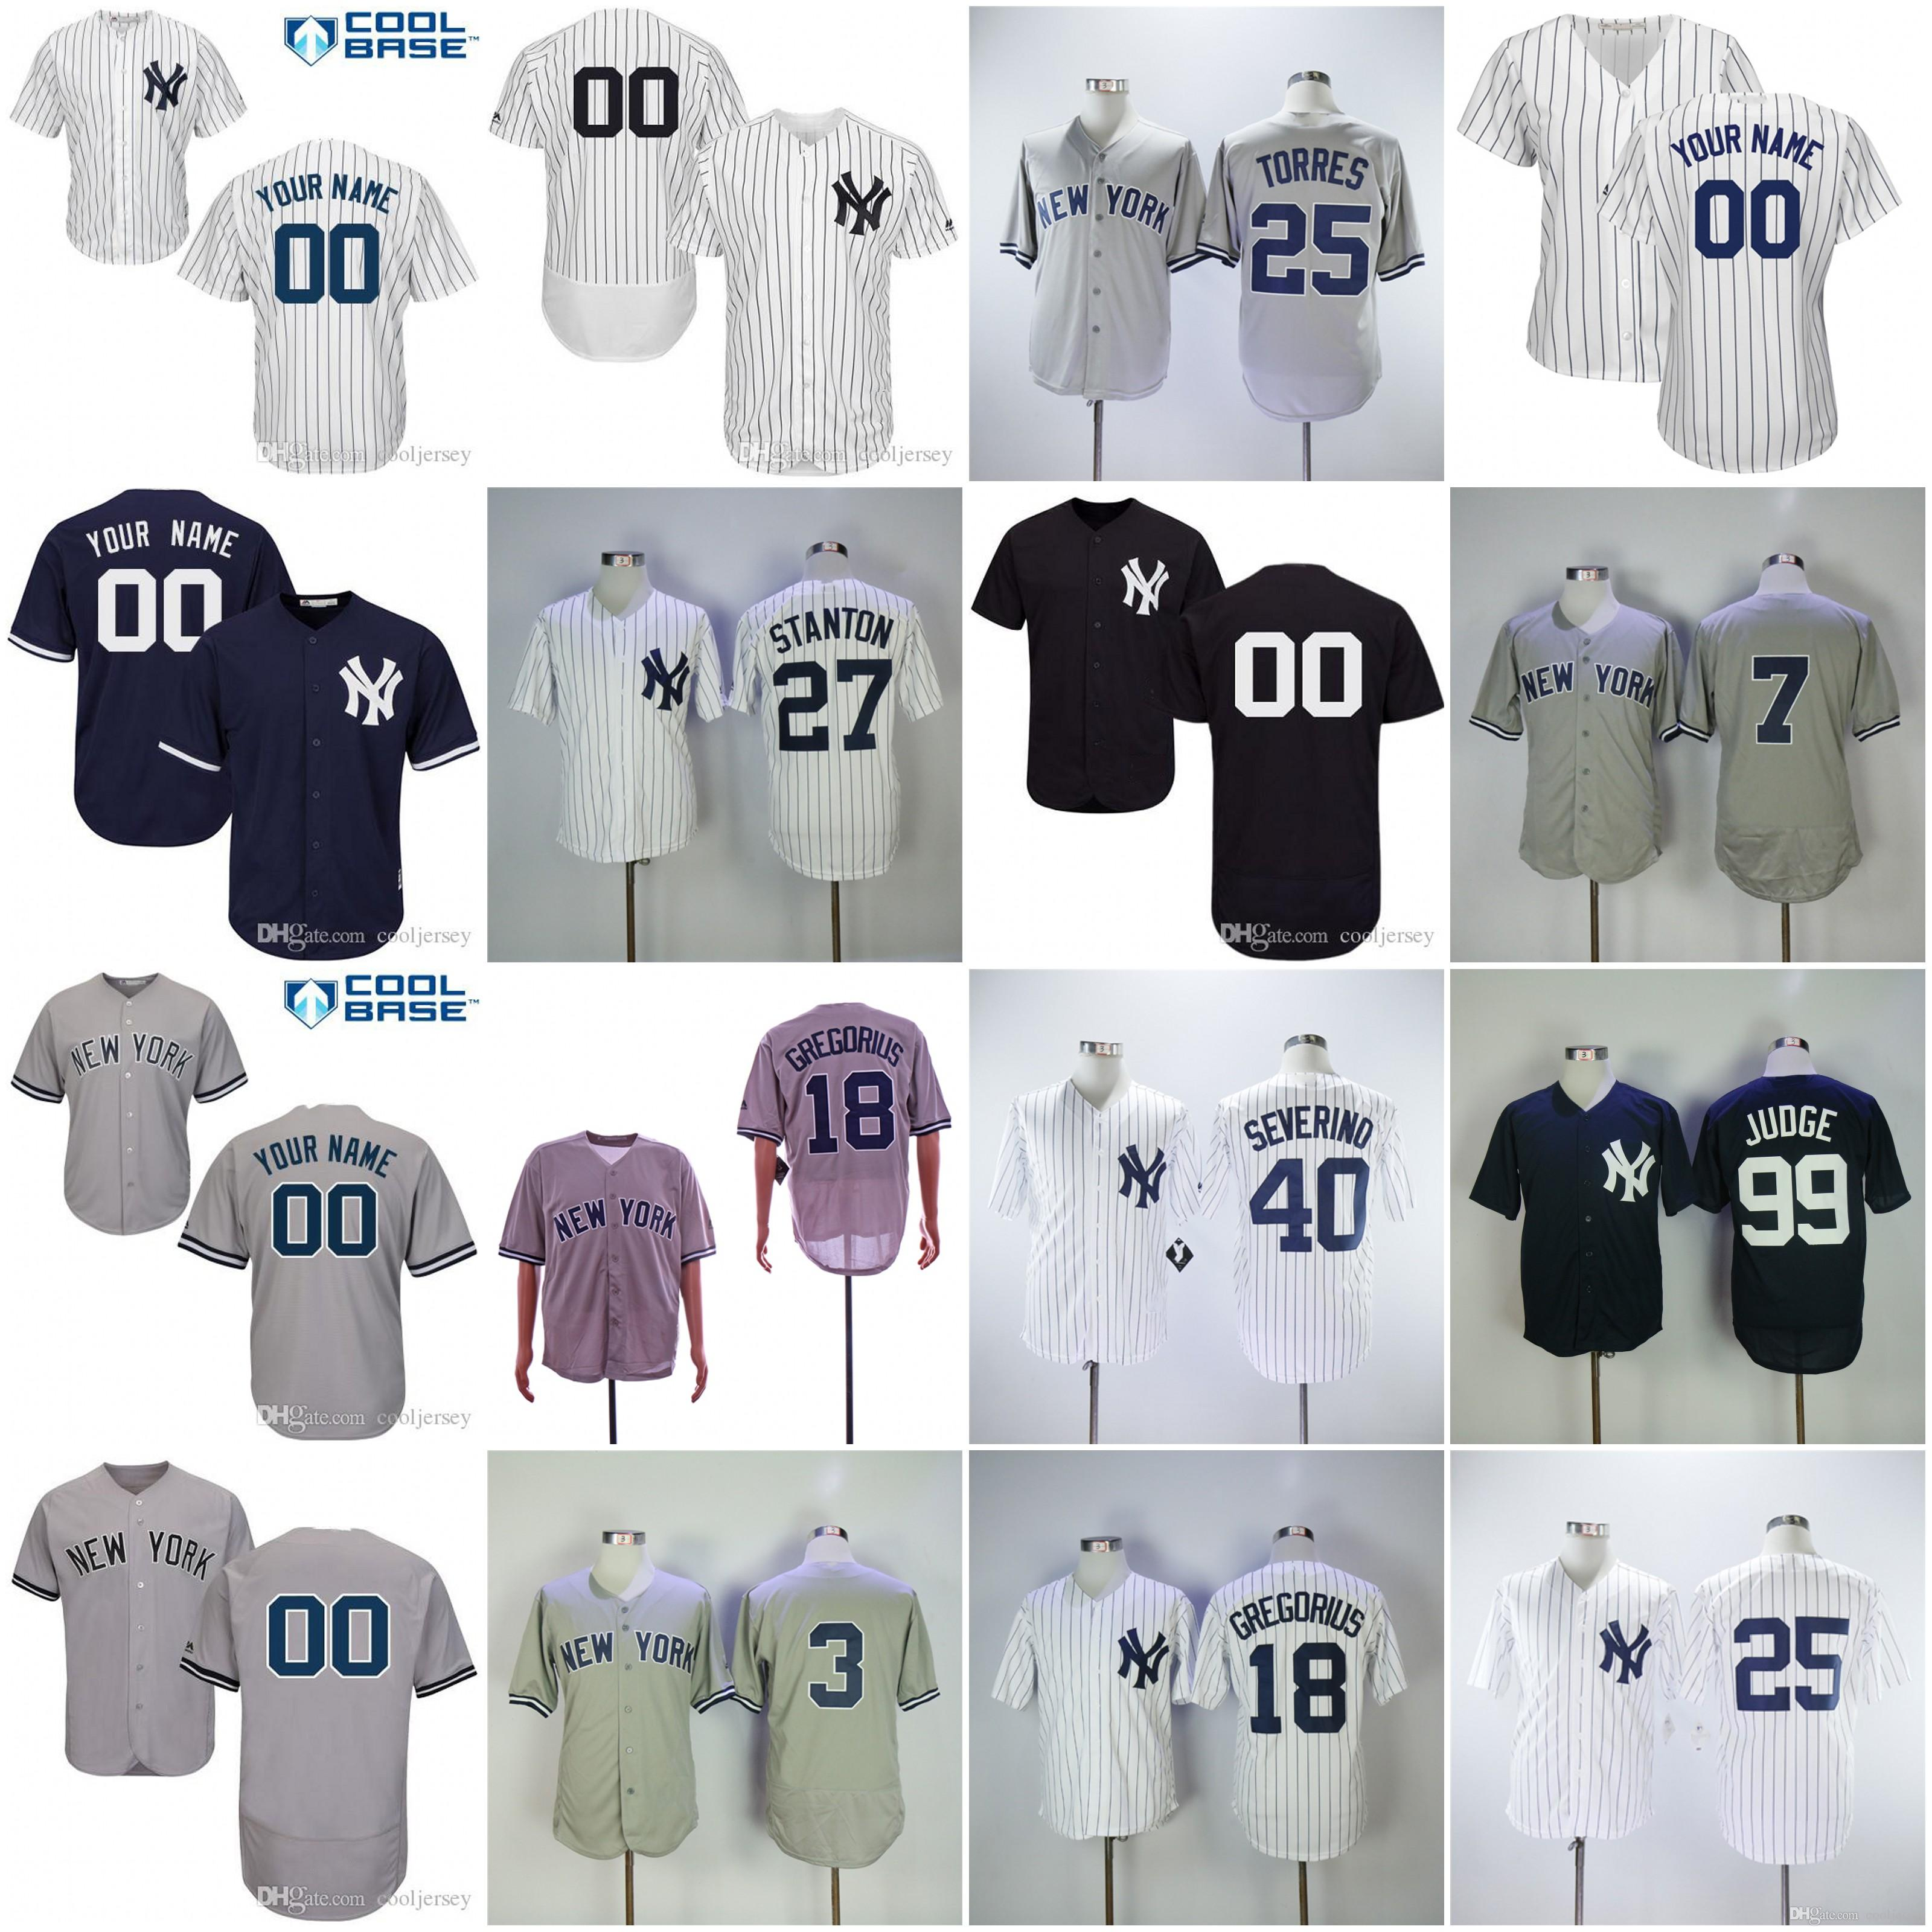 official photos 4b7b4 b74ce 2019 Custom 2019 Yankees Jerseys New York #0 Adam Ottavino 12 Tulowitzki 18  Didi Gregorius 19 Masahiro Tanaka 22 Jacoby Ellsbury Men Women Youth From  ...